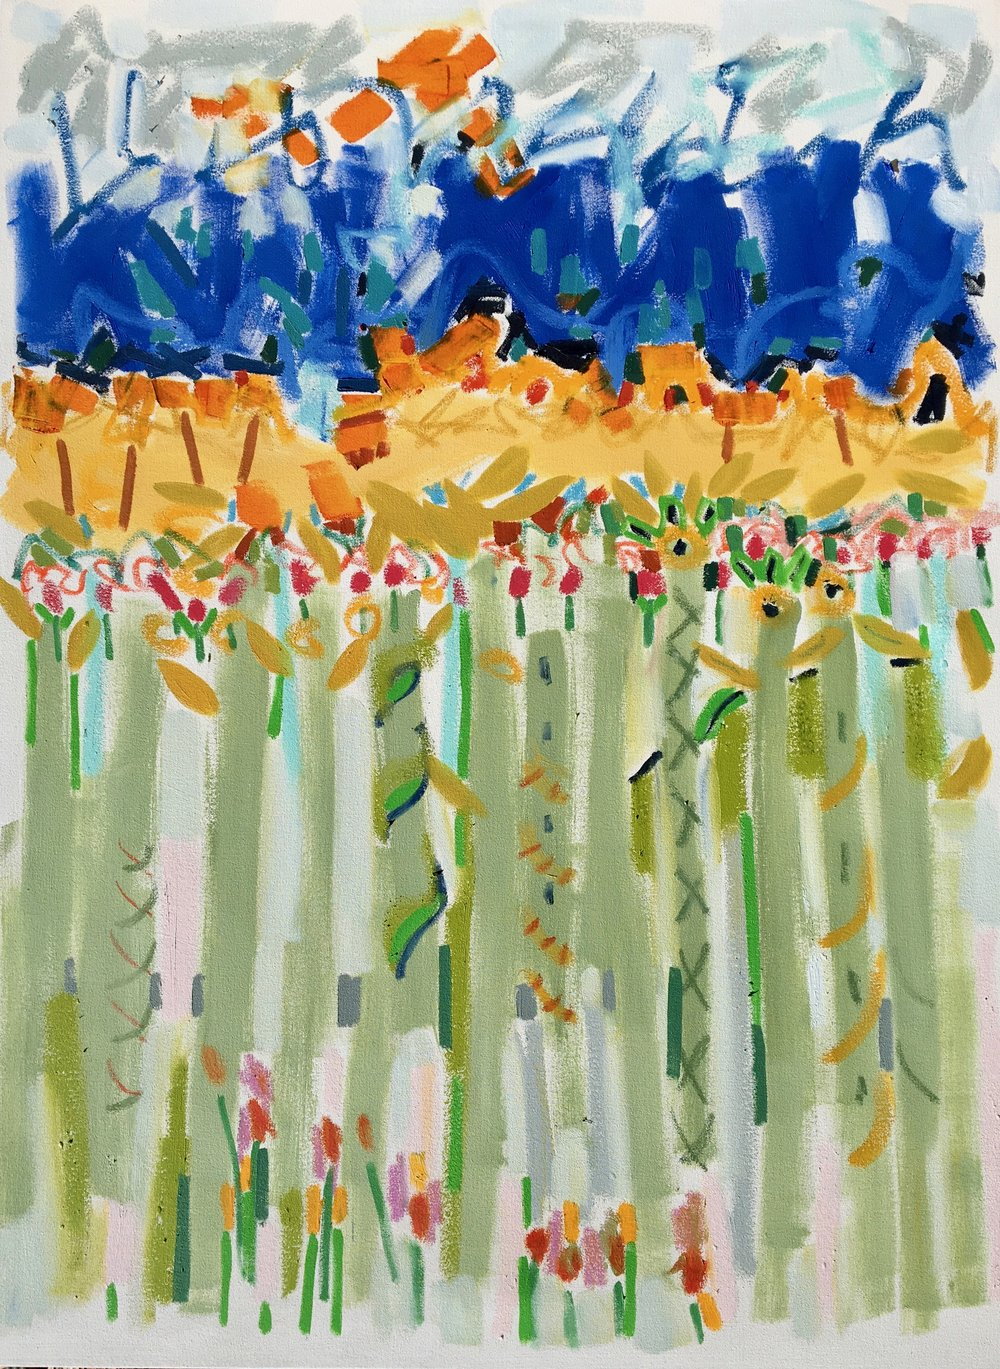 Jimmy Plants the Garden I, 48x36